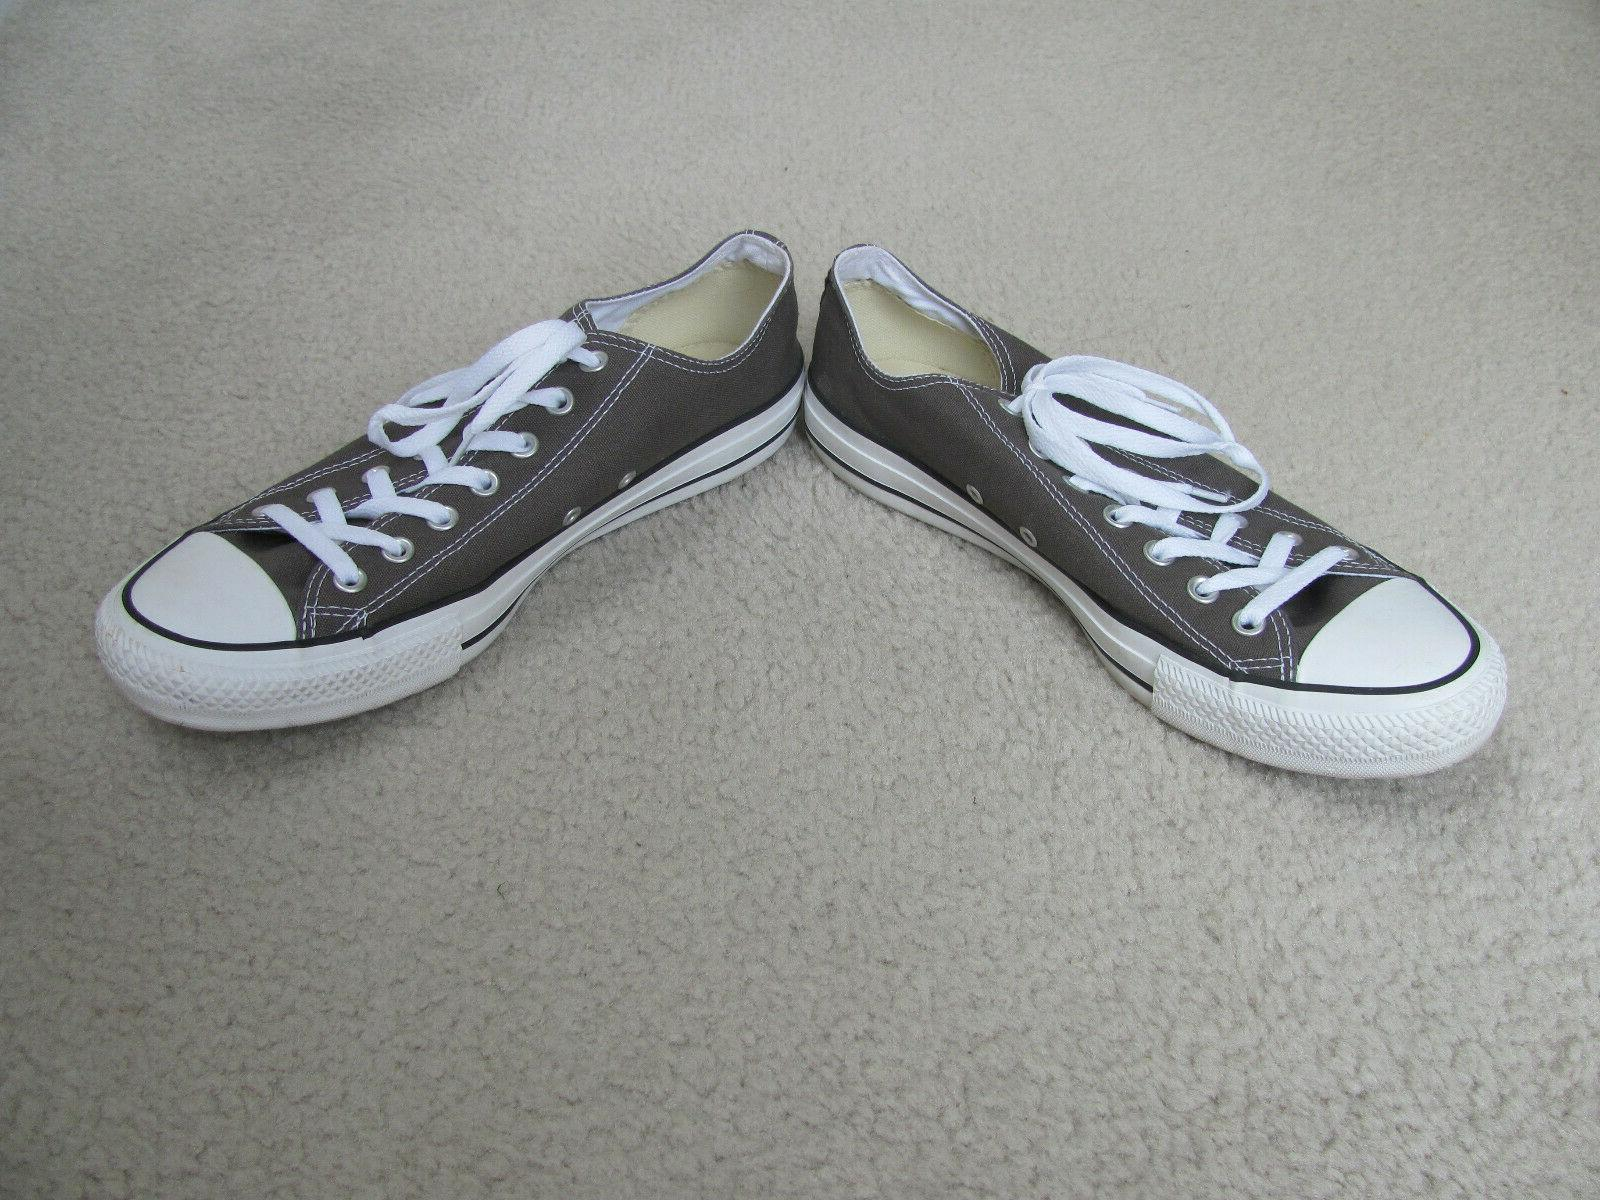 Converse Star Gray/Camo Colored Canvas Basketball Shoes 11-New